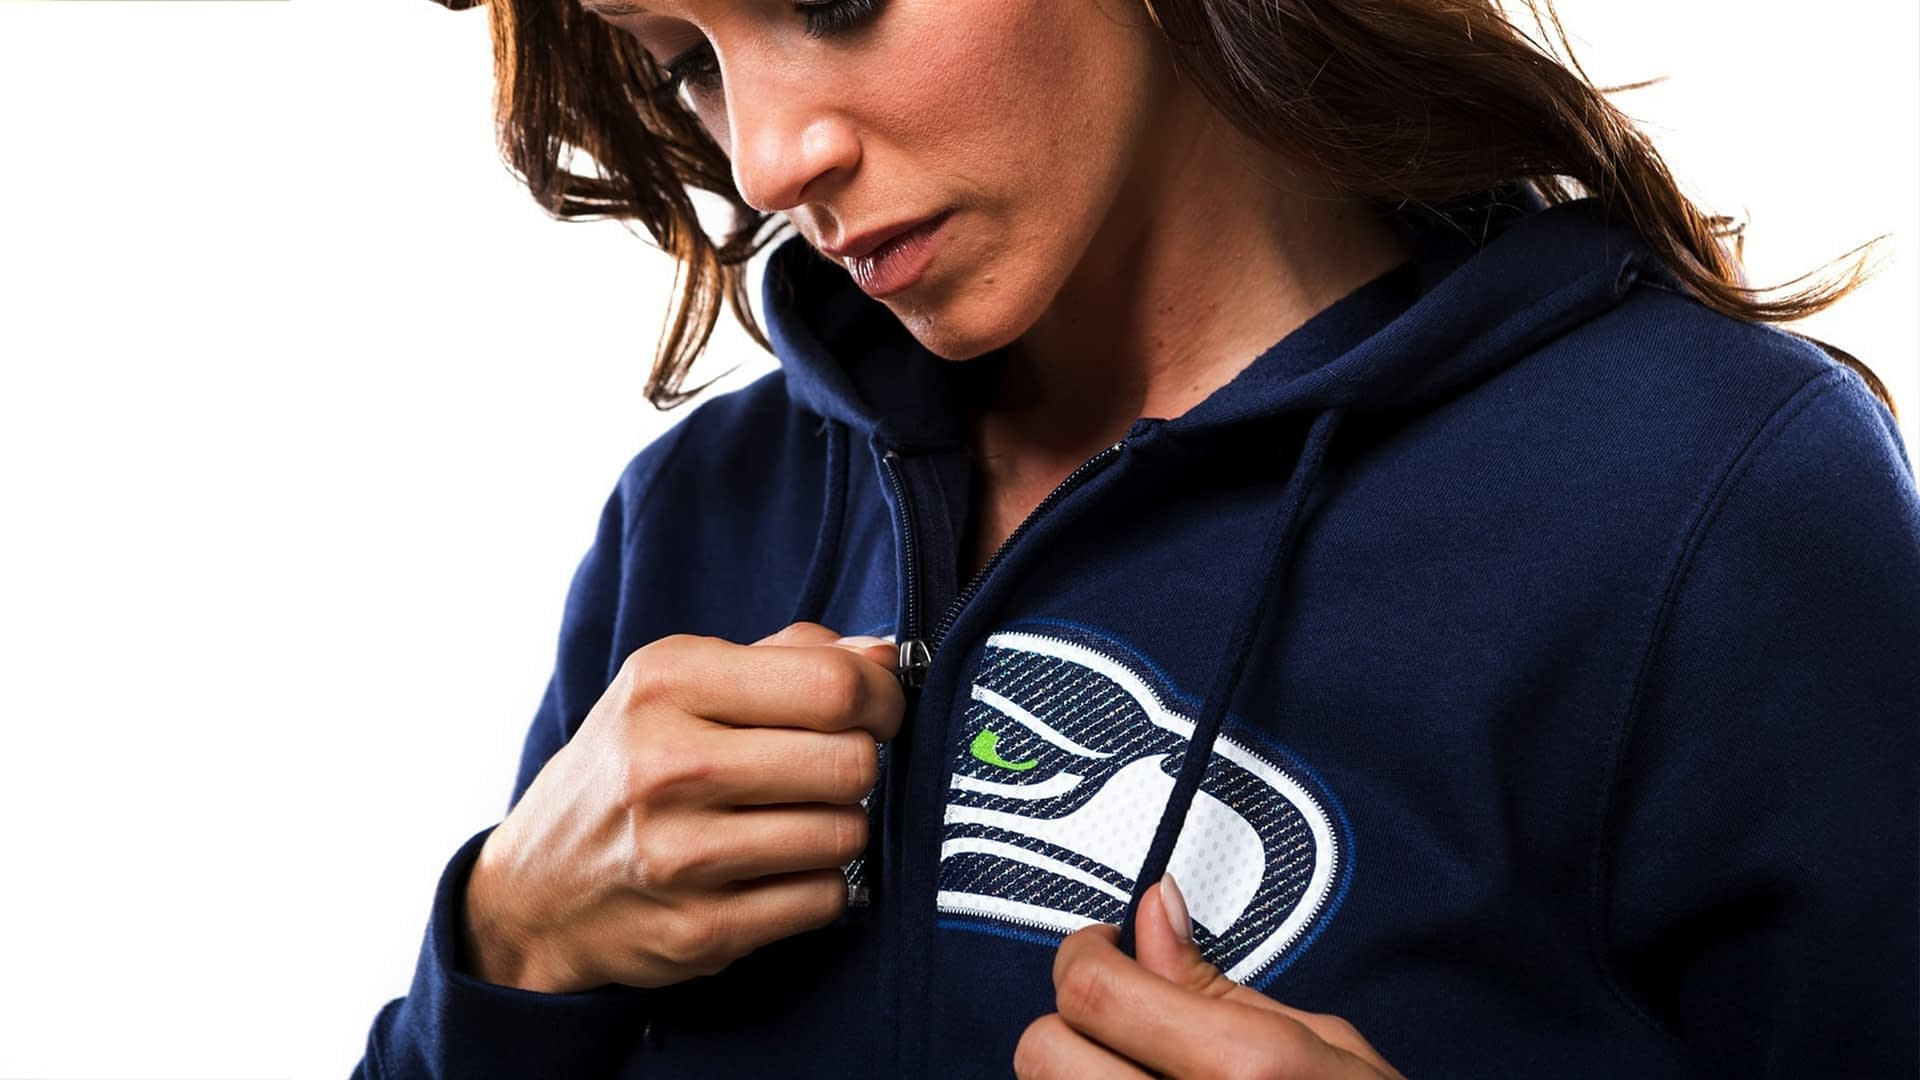 A woman modeling a Seahwaks sweater for Majestic, a sportswear manufacturer.